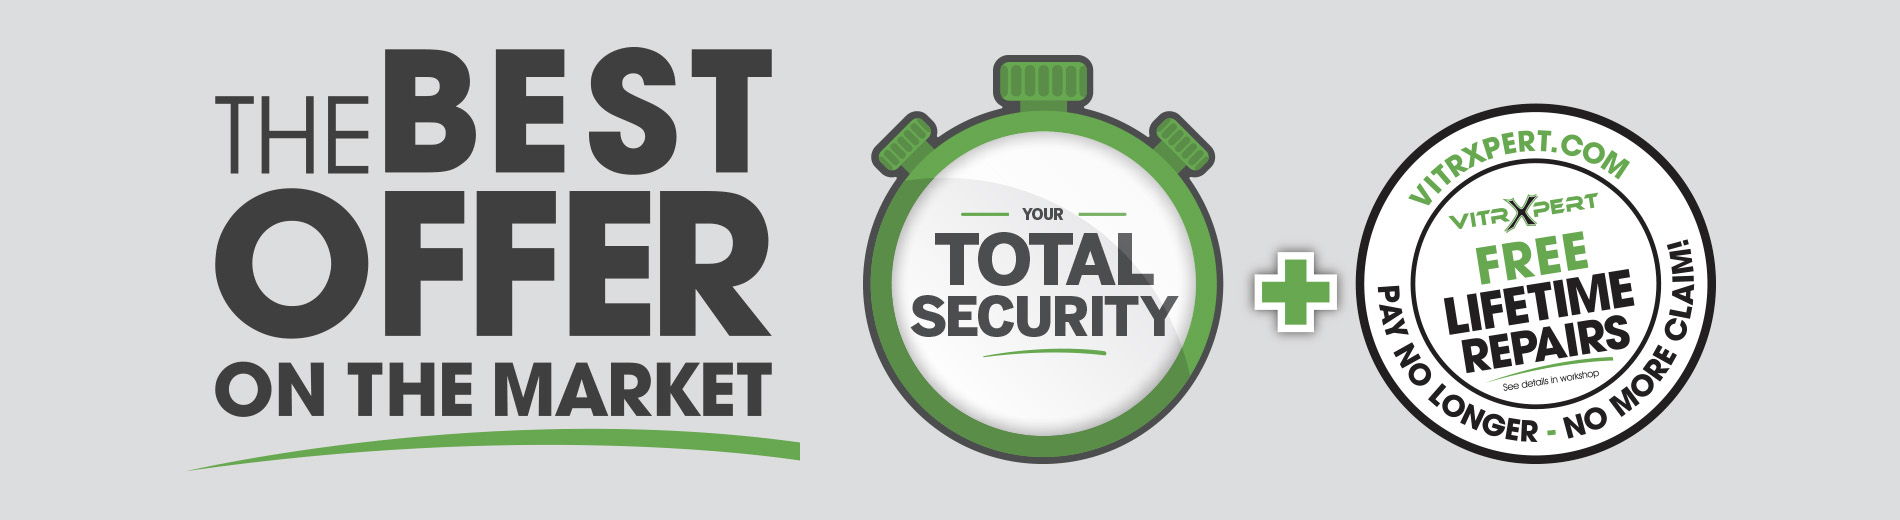 Best offer - Total Security